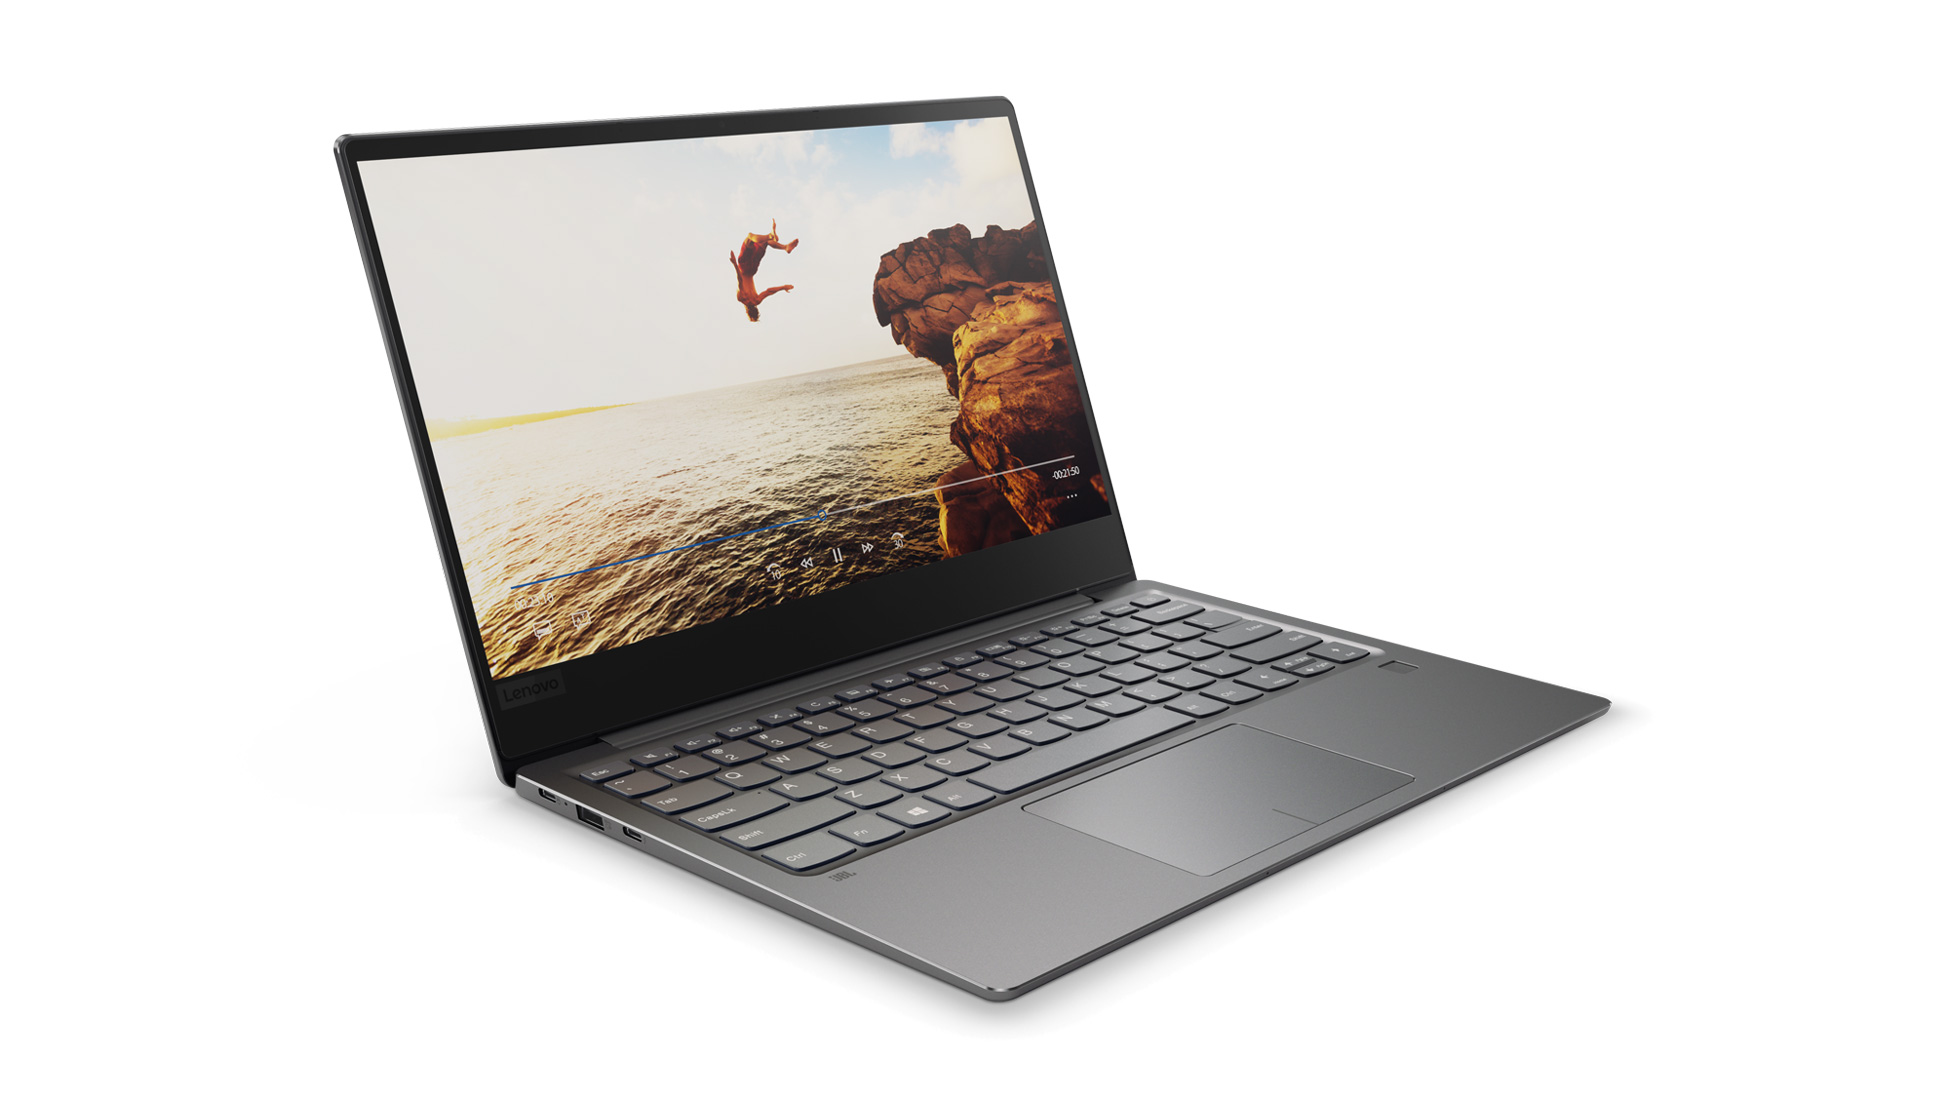 Фото  Ультрабук LENOVO ideapad 720S Iron Grey (81BV007MRA)